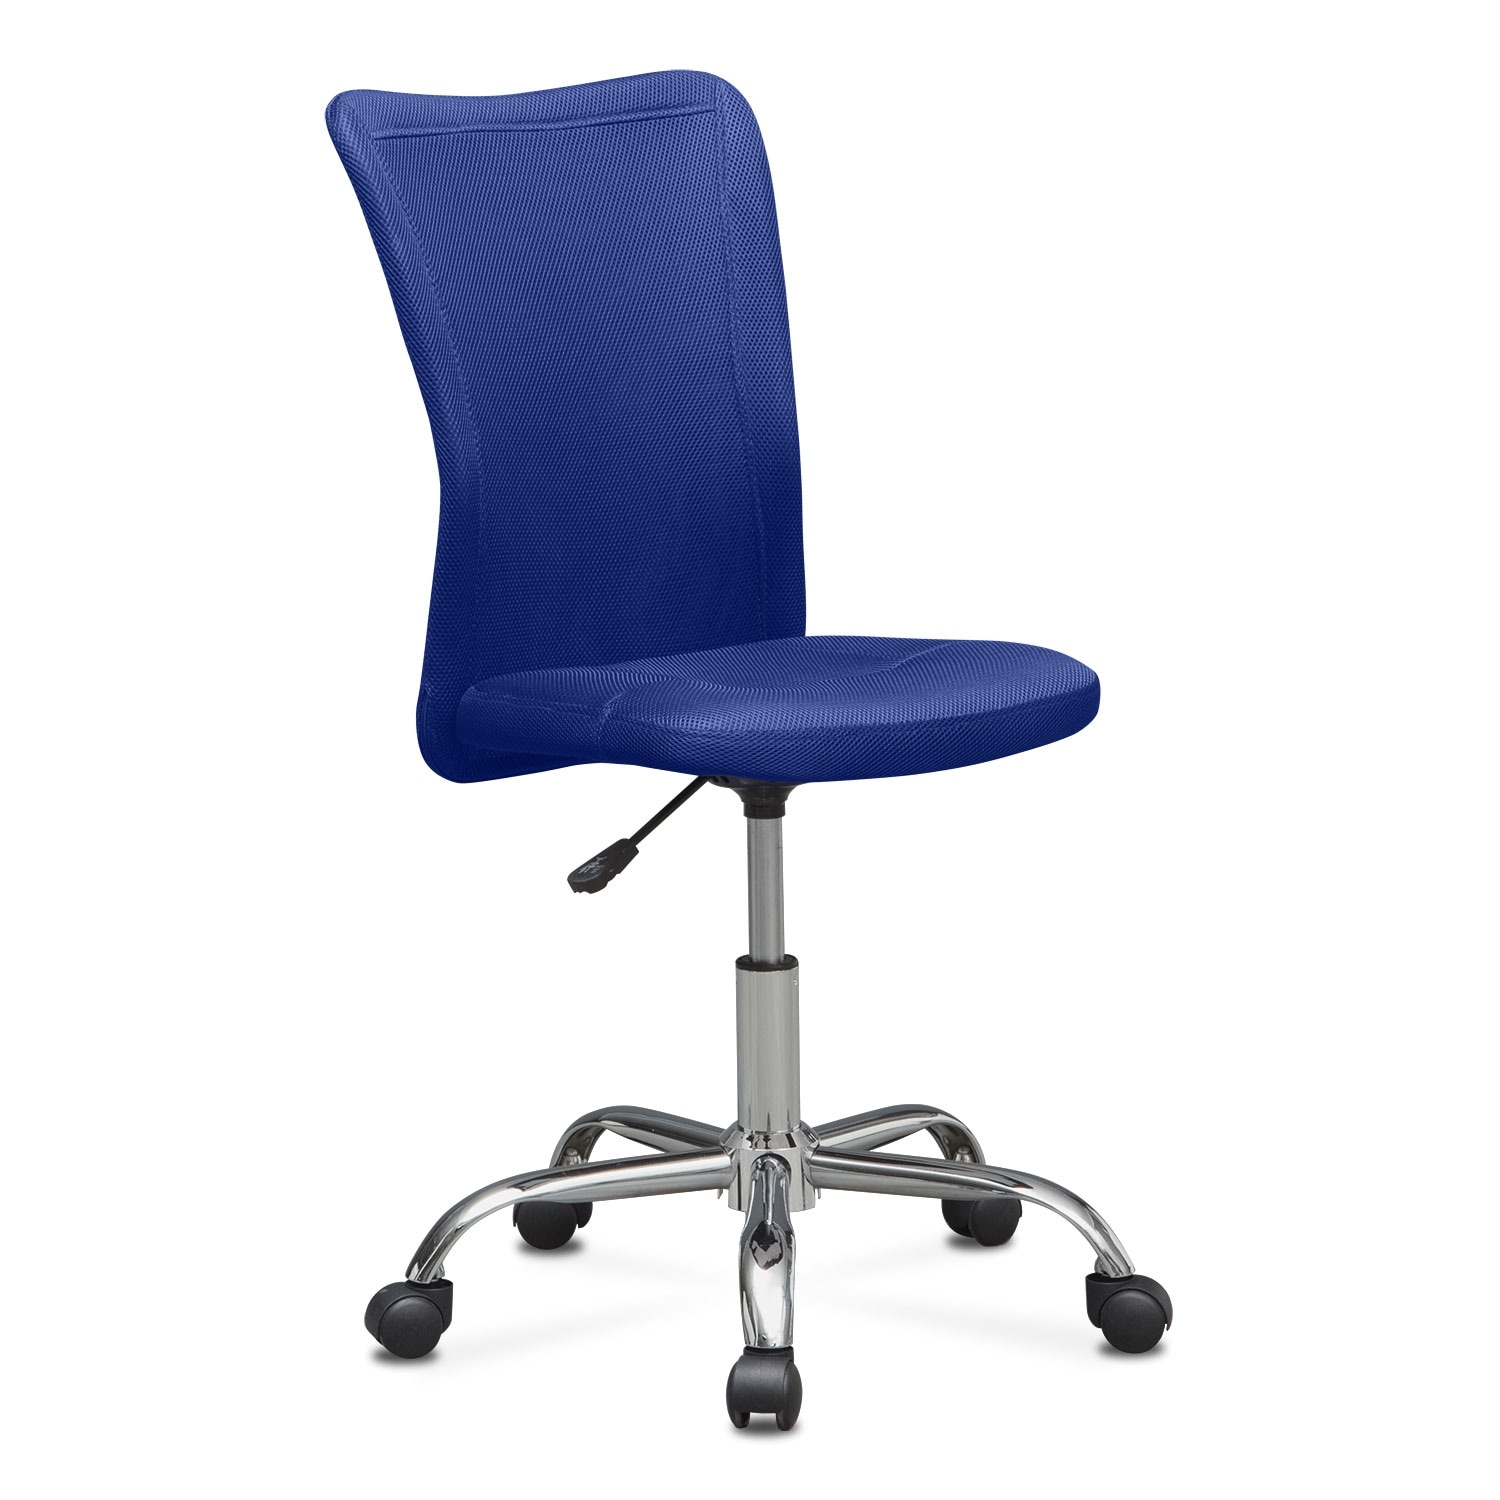 Kids Furniture - Mist Desk Chair - Blue